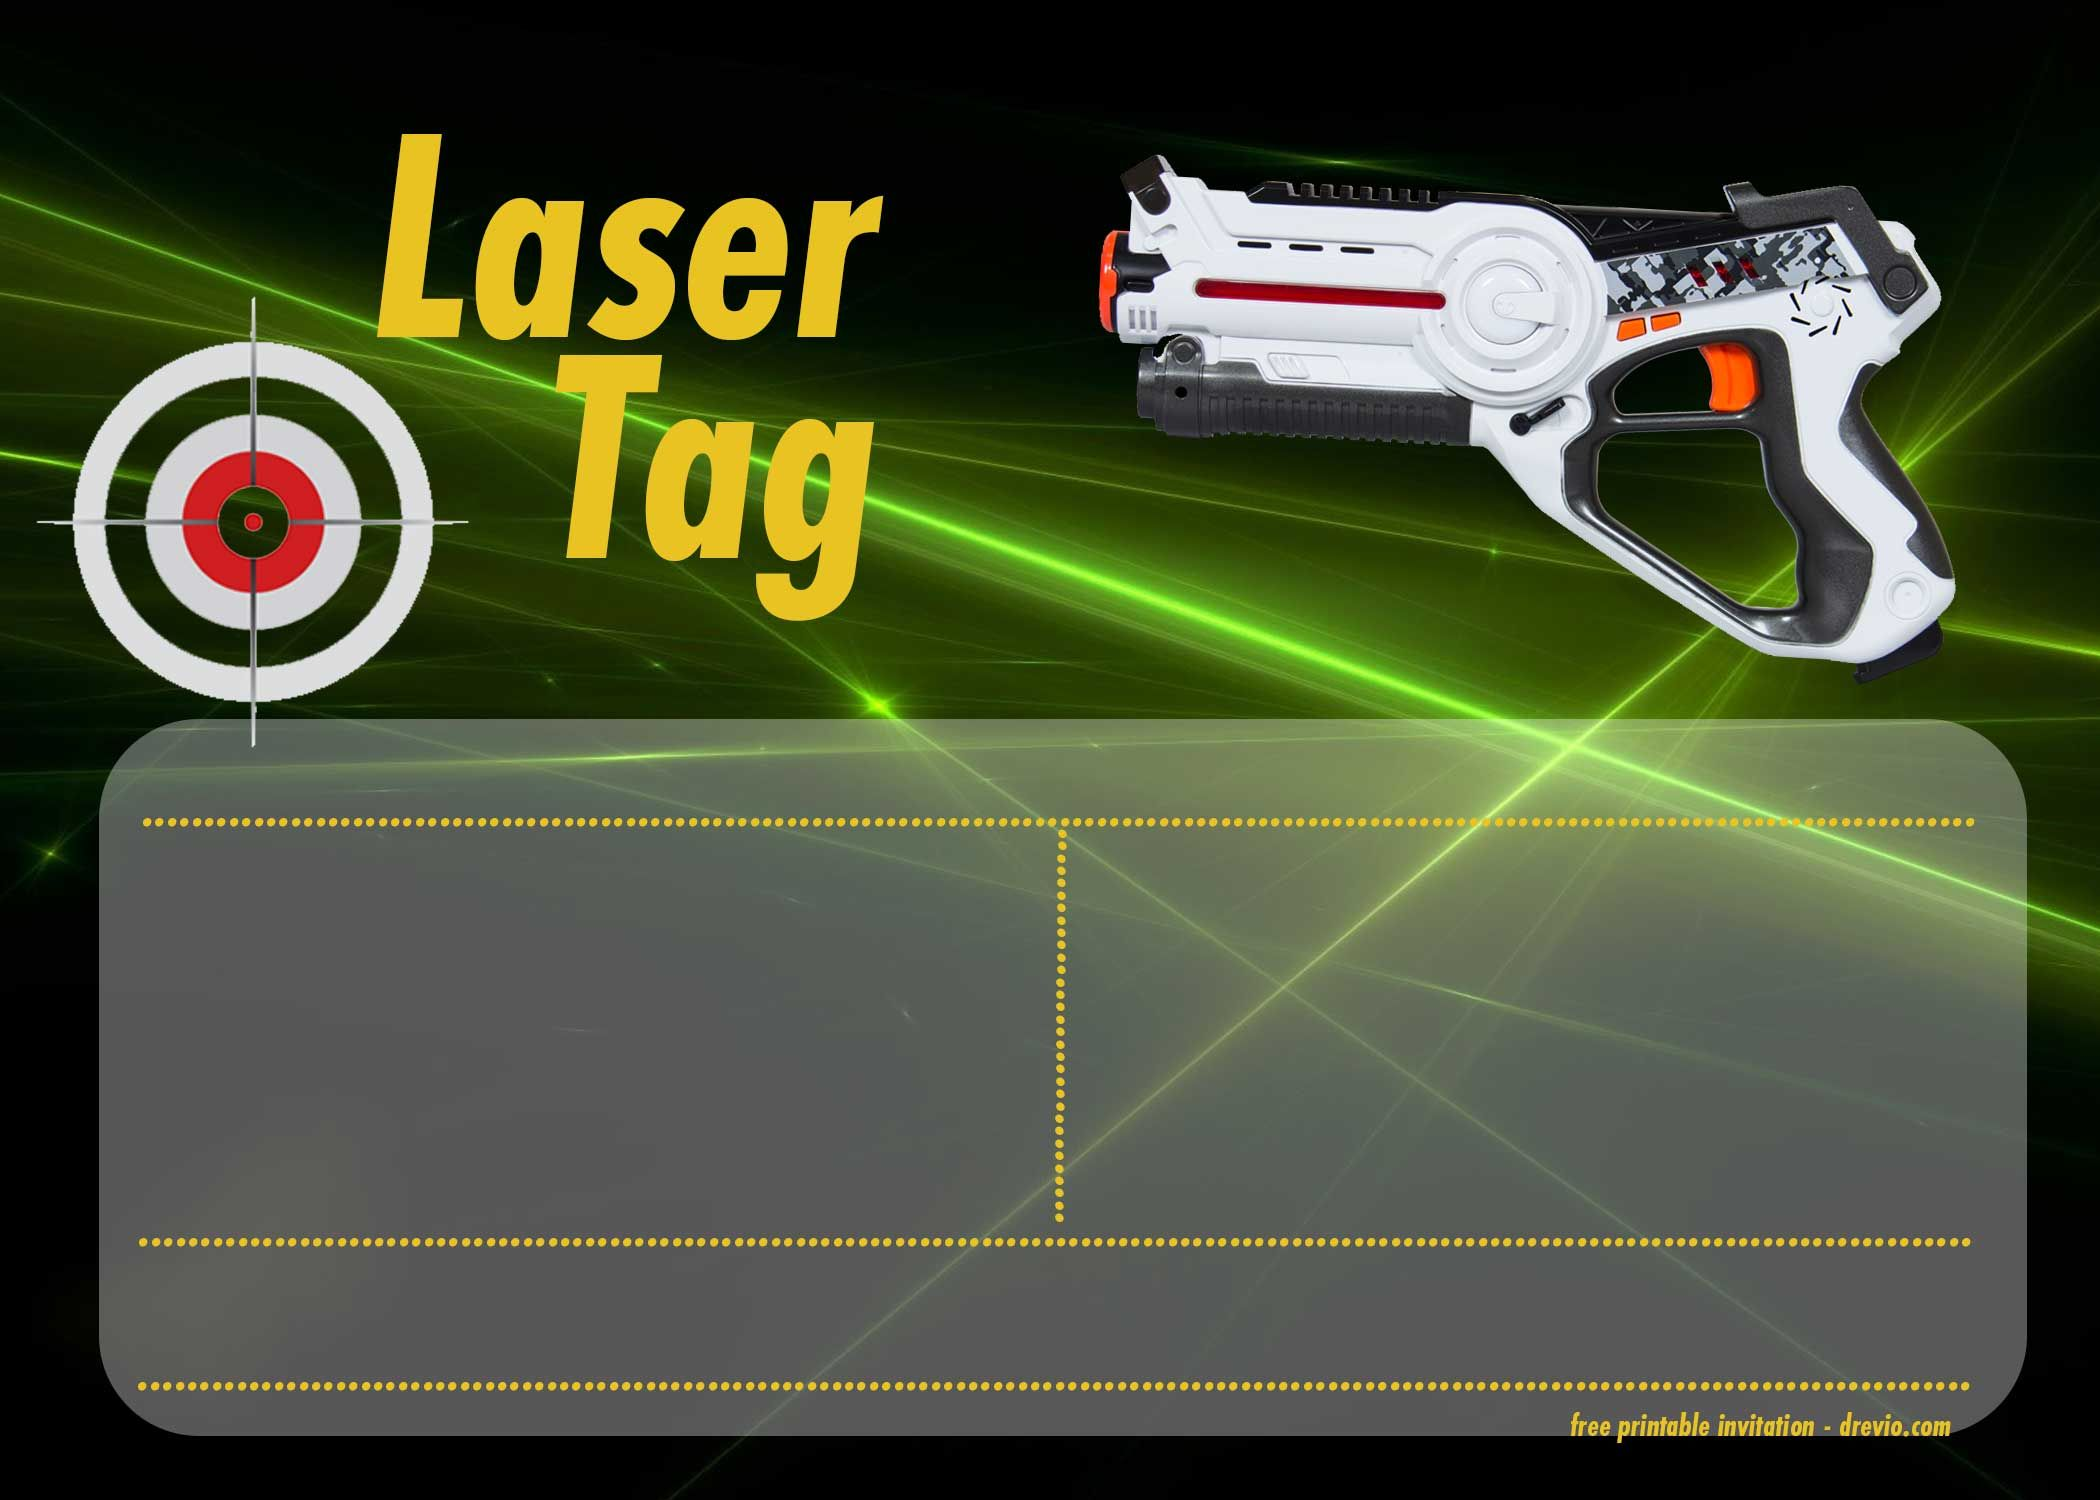 image about Laser Tag Invitations Free Printable named Free of charge Printable Laser Tag Invitation Templates Cost-free